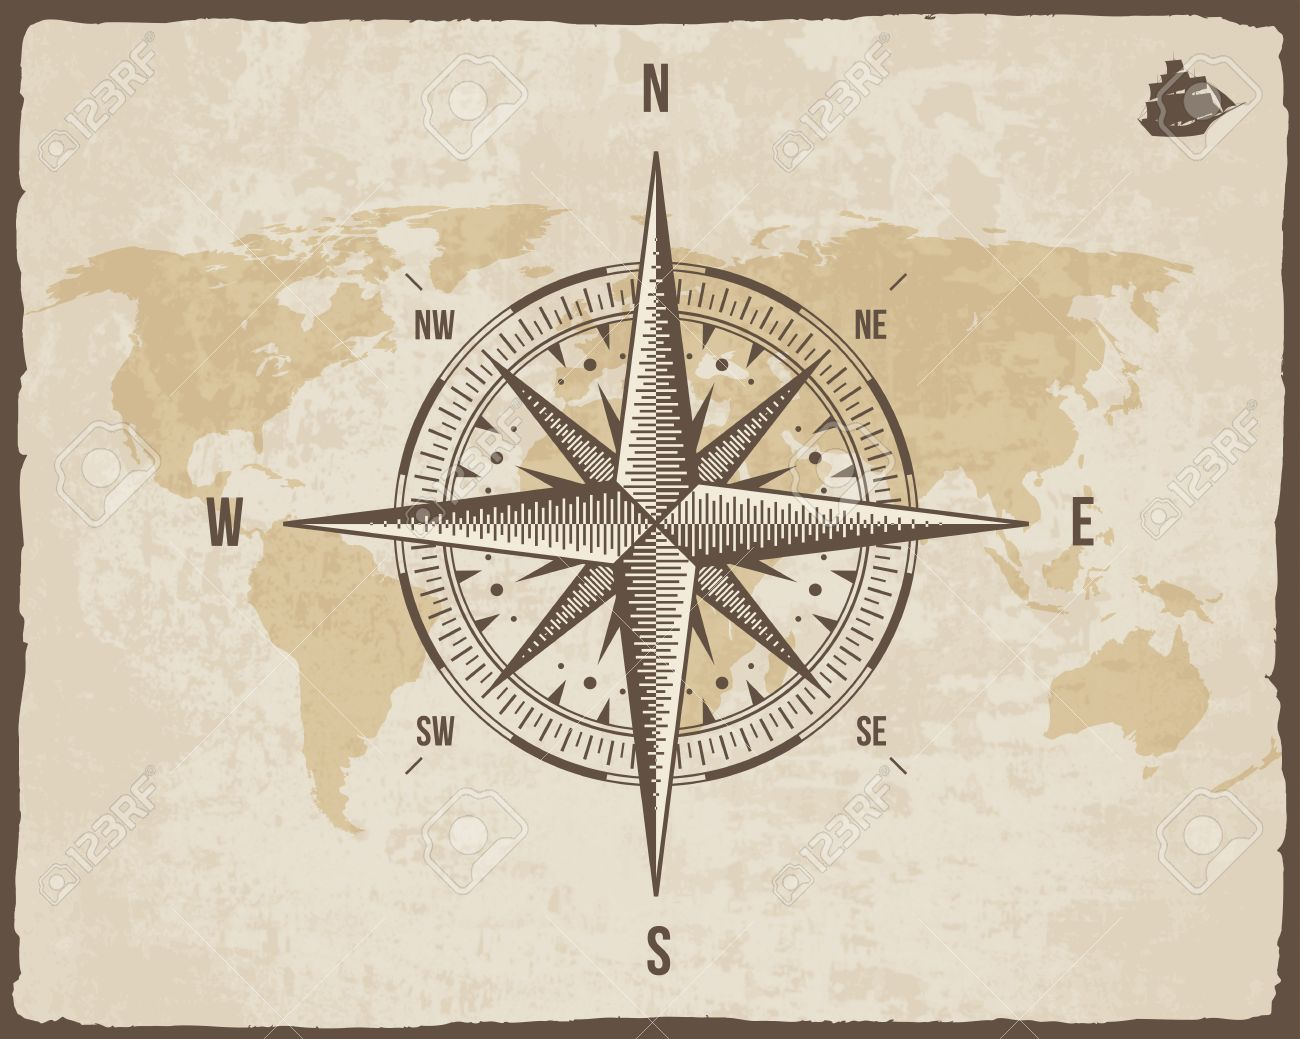 Vintage nautical compass old world map on paper texture with vector vintage nautical compass old world map on paper texture with torn border frame wind rose background with ship logo silhouette gumiabroncs Choice Image